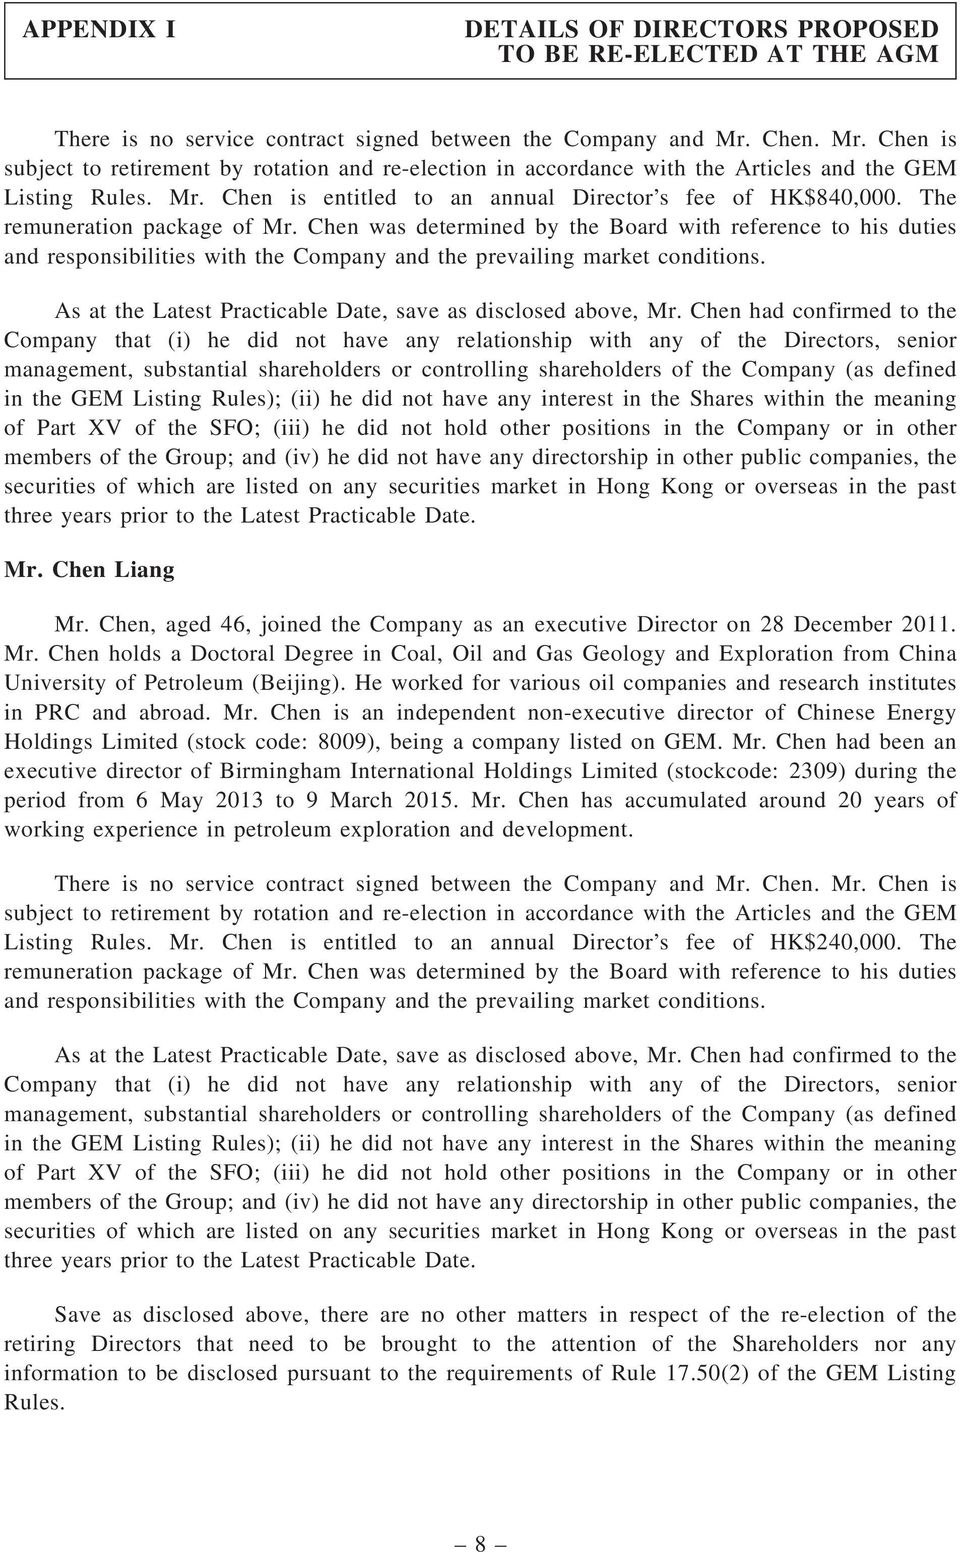 The remuneration package of Mr. Chen was determined by the Board with reference to his duties and responsibilities with the Company and the prevailing market conditions.